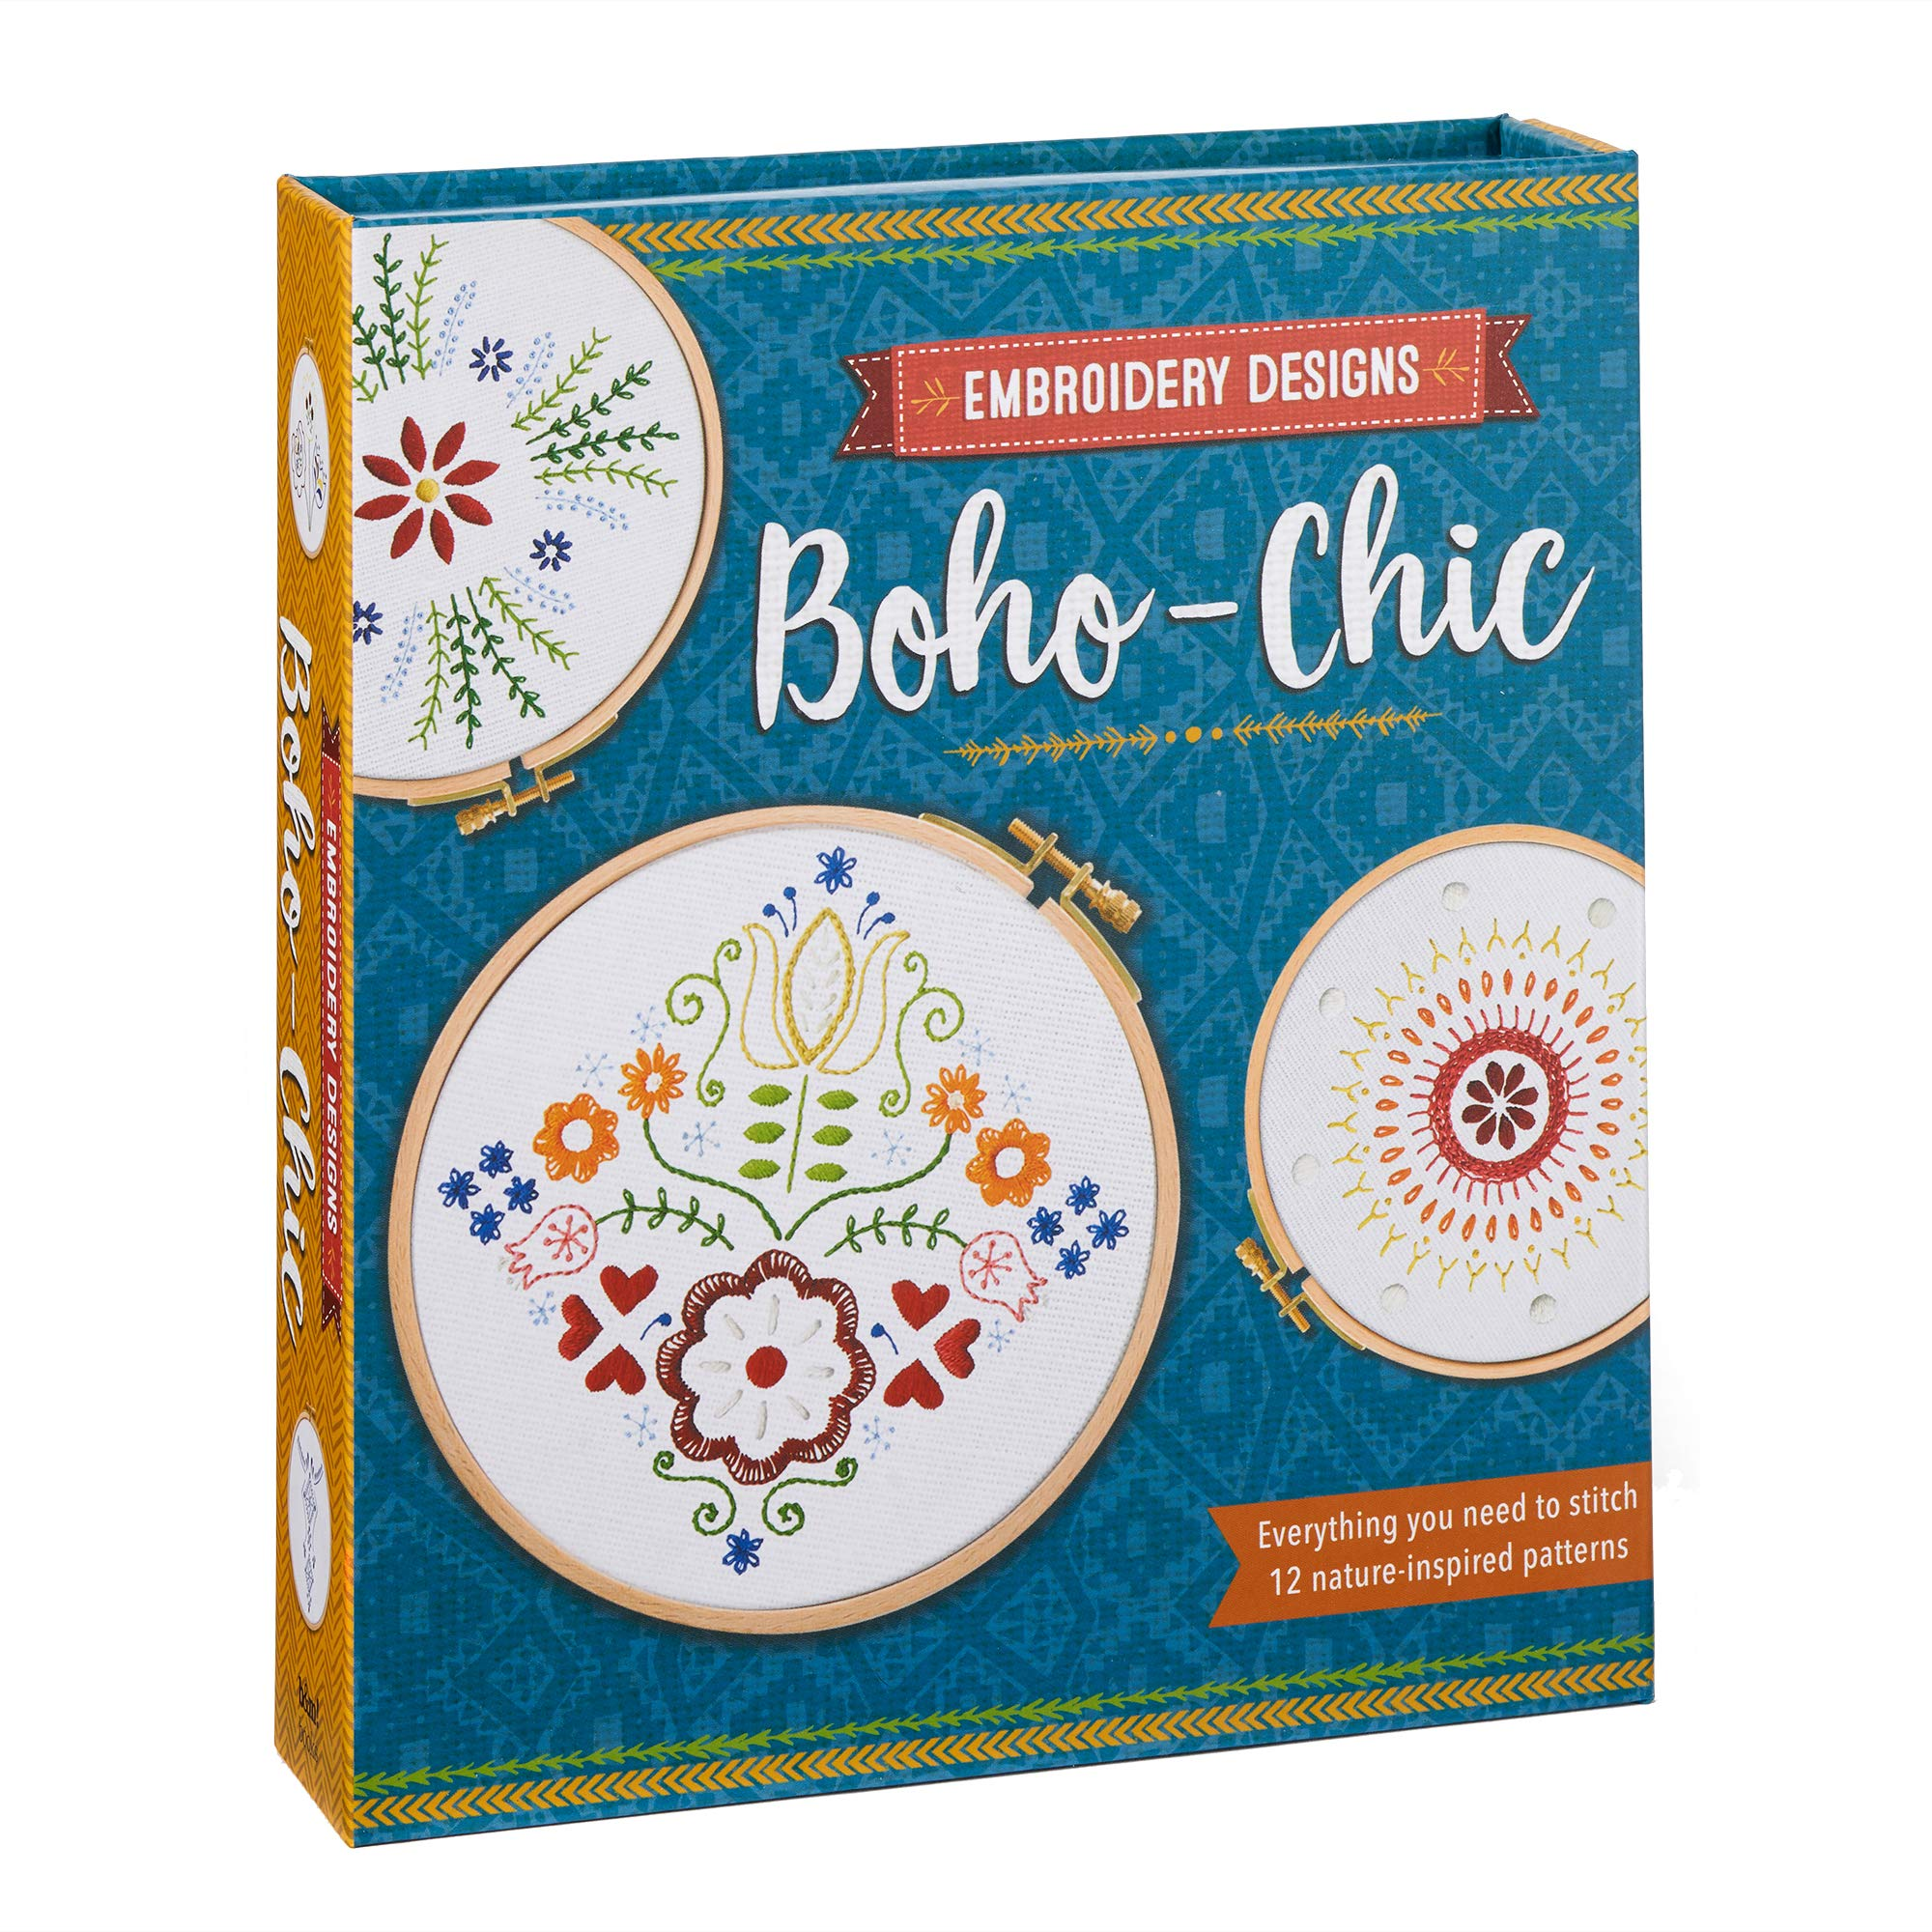 Embroidery Designs: Boho-Chic